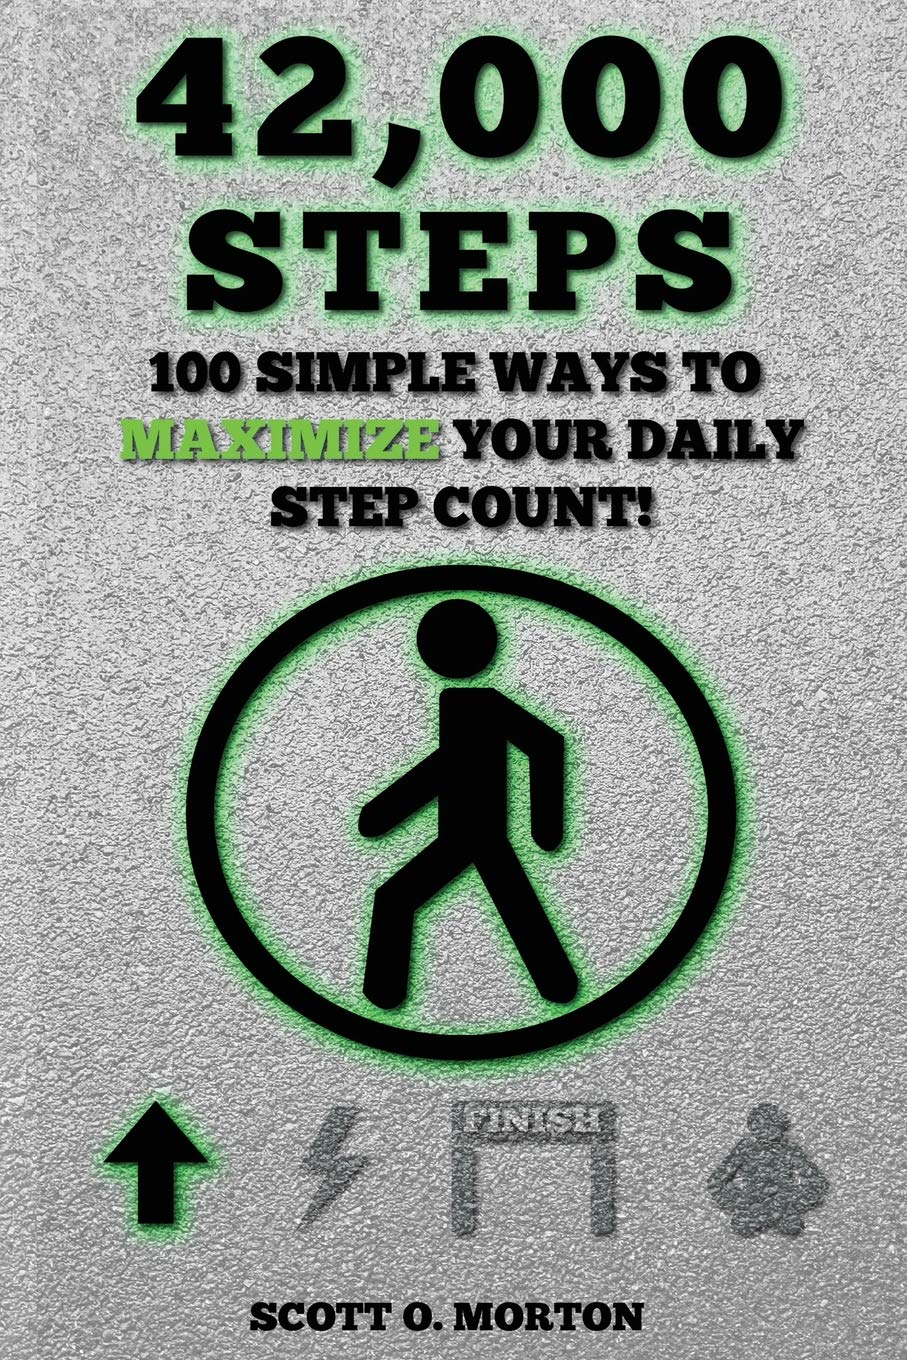 Download 42,000 Steps: 100 Simple Ways to Maximize Your Daily Step Count! (Supercharge Your Walking Life) pdf